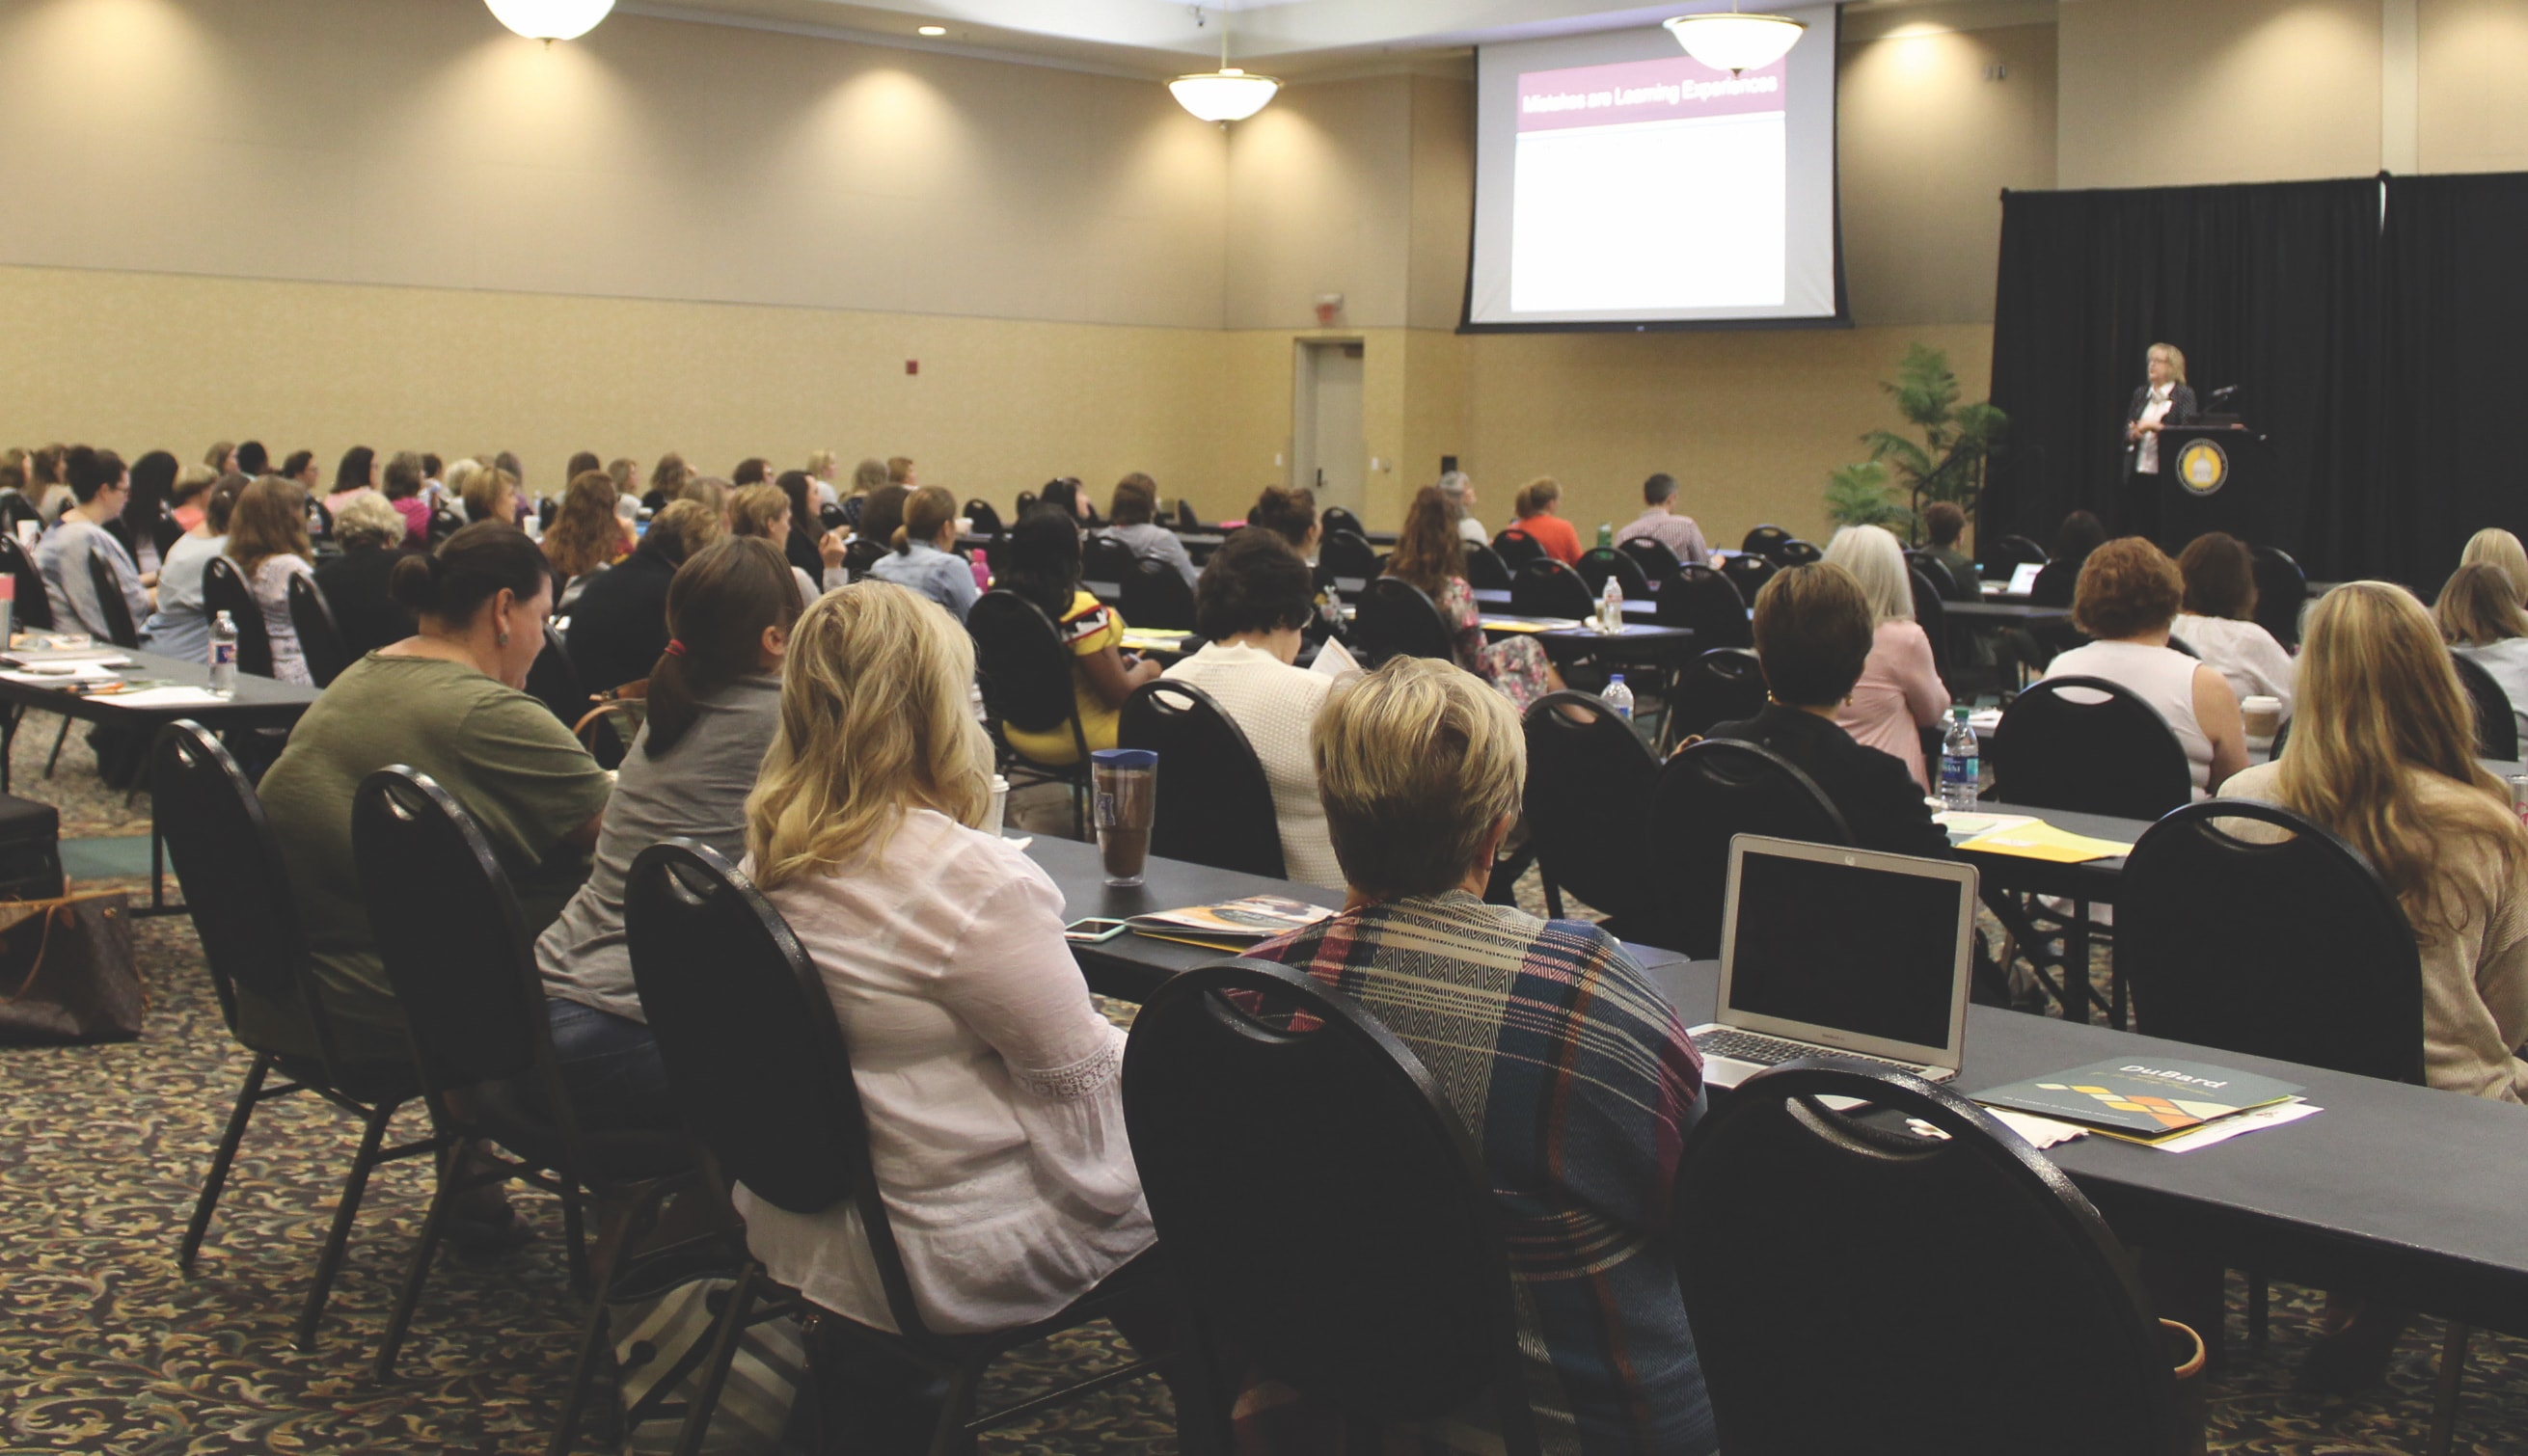 The DuBard School for Language Disorders at The University of Southern Mississippi is hosting the 23rd Annual DuBard Symposium: Dyslexia and Related Disorders.